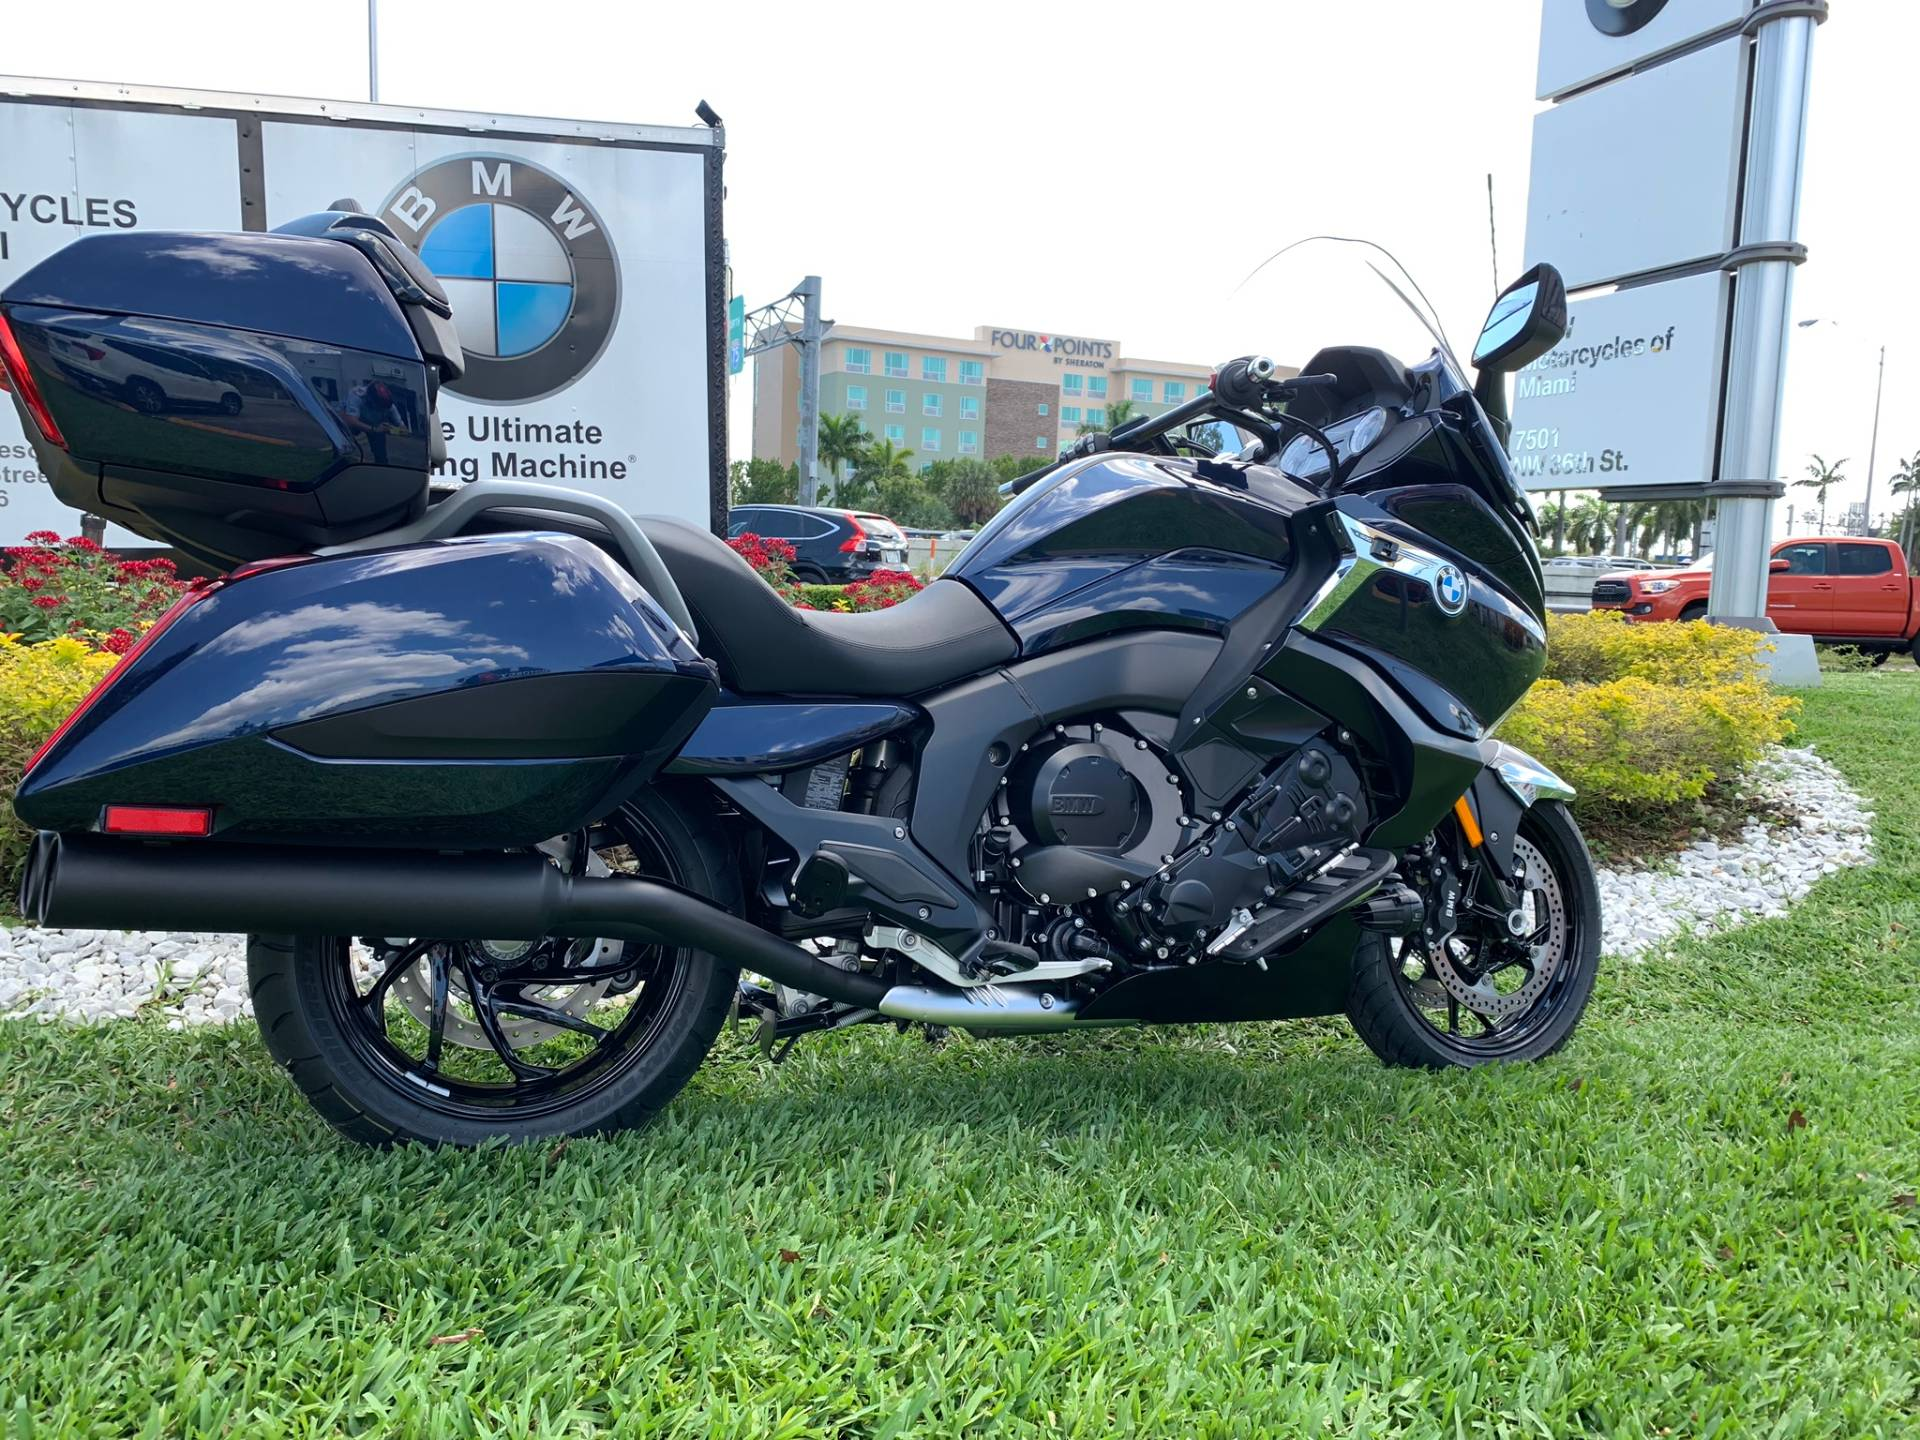 New 2019 BMW K 1600 B for sale, BMW K 1600B for sale, BMW Motorcycle K1600B, new BMW Bagger, Gran America. BMW Motorcycles of Miami, Motorcycles of Miami, Motorcycles Miami - Photo 25